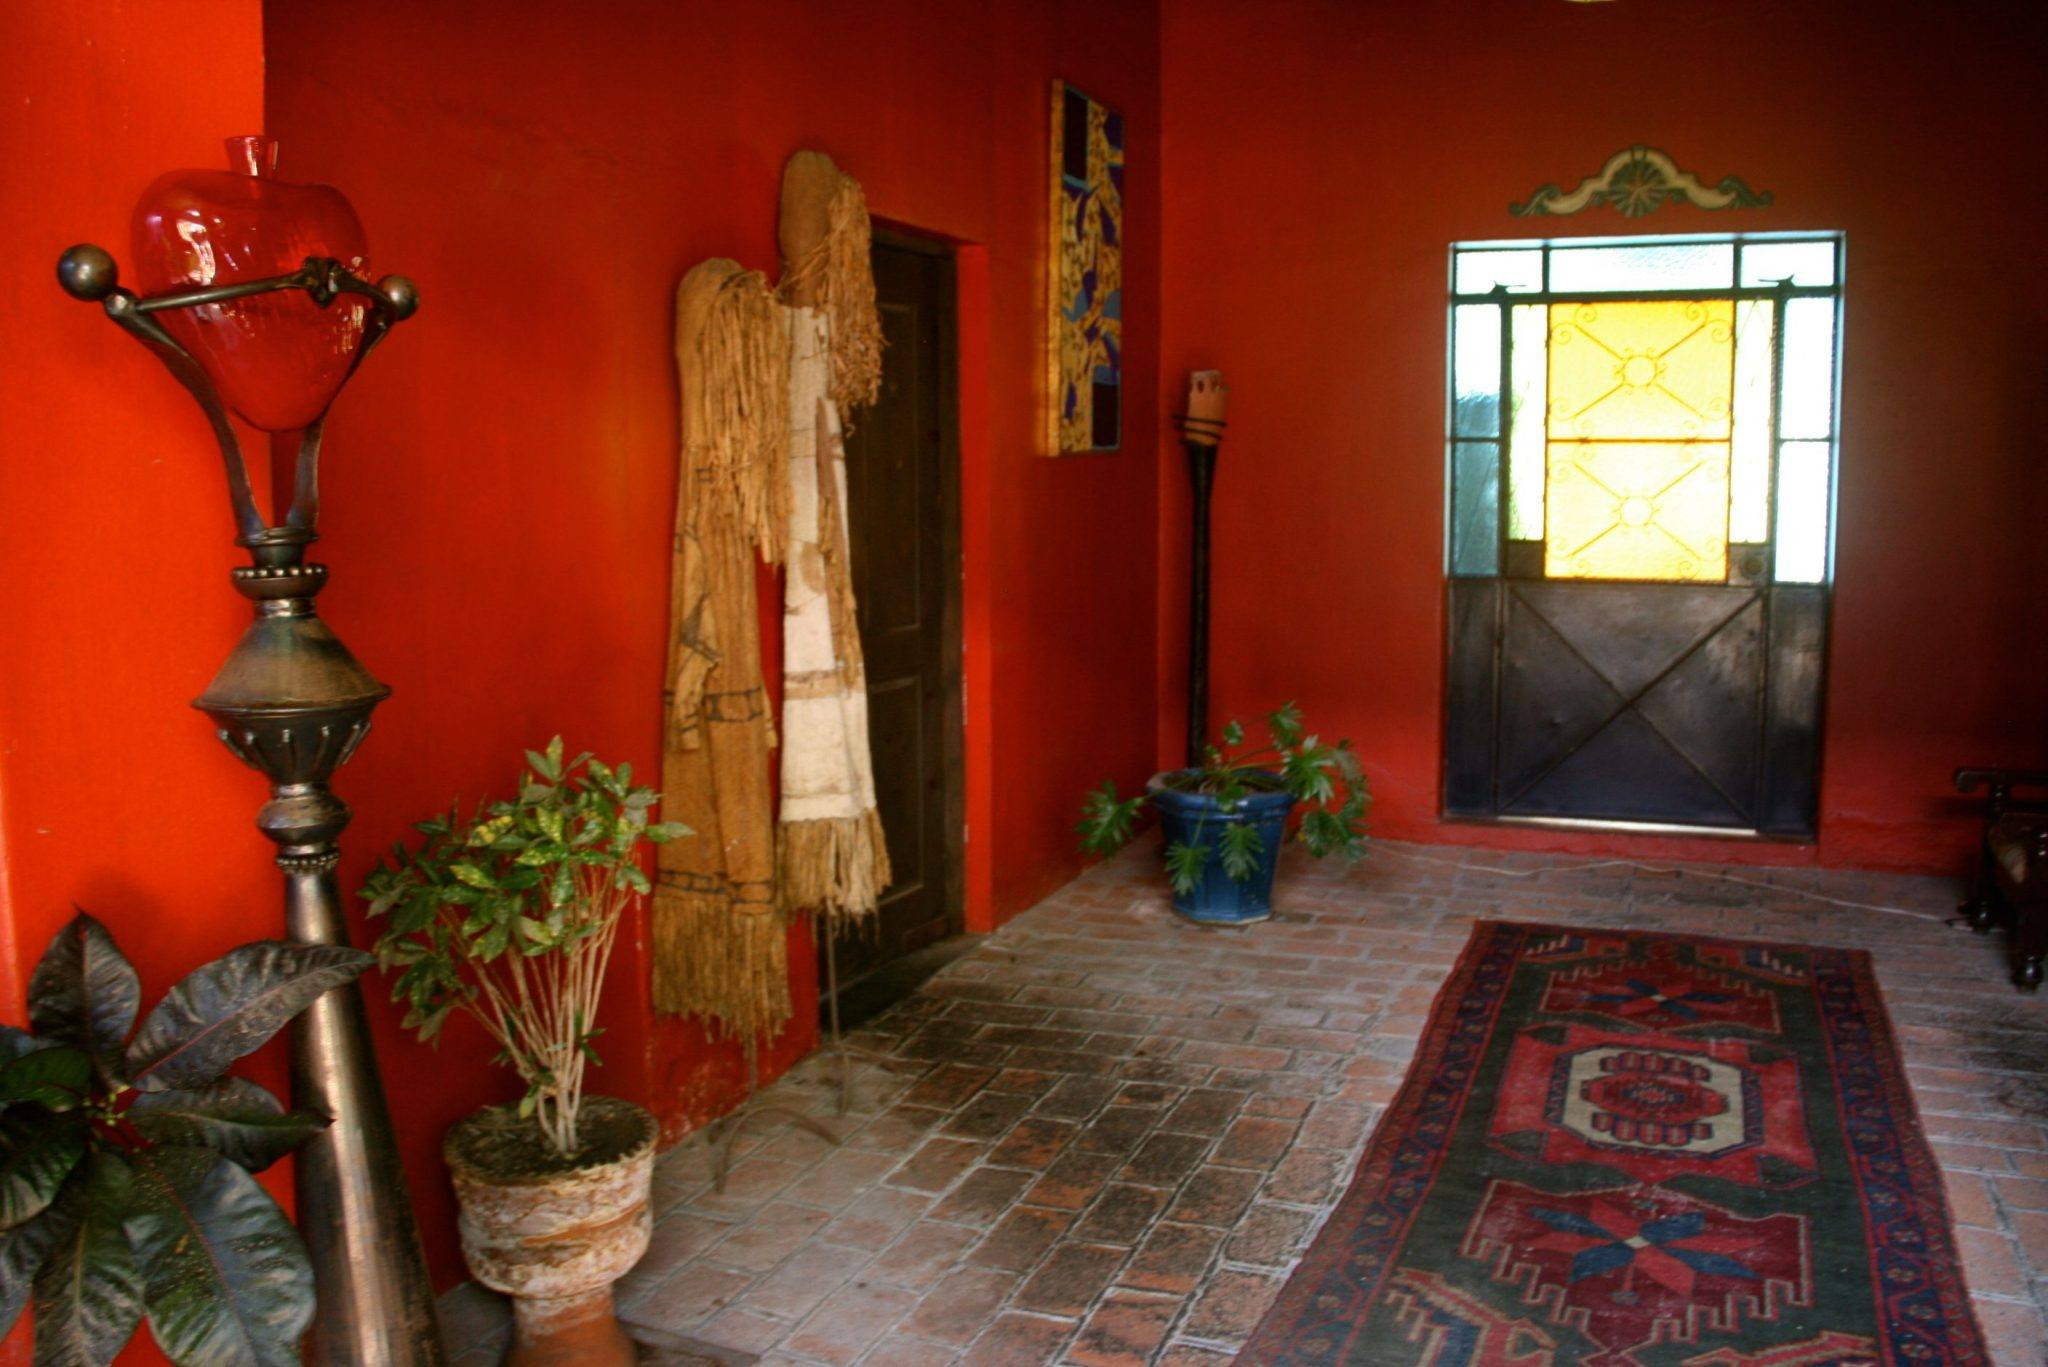 Pictures of Hotel California, Mexican decorating